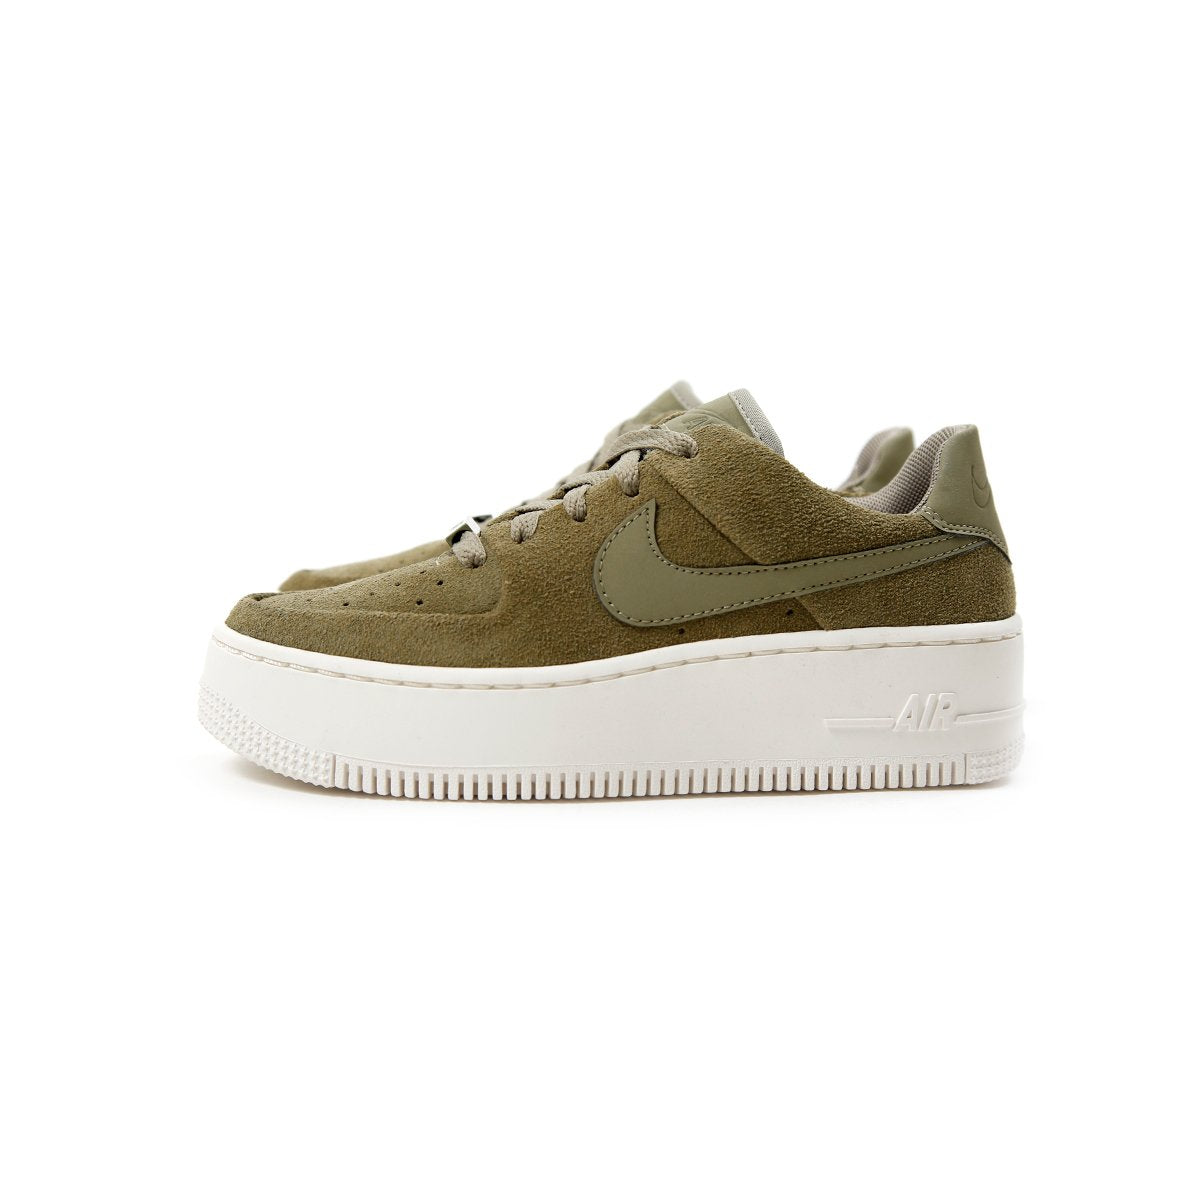 sale retailer eded8 e924f ConceptsIntl | Nike Women's Air Force 1 Sage Low (Trooper ...